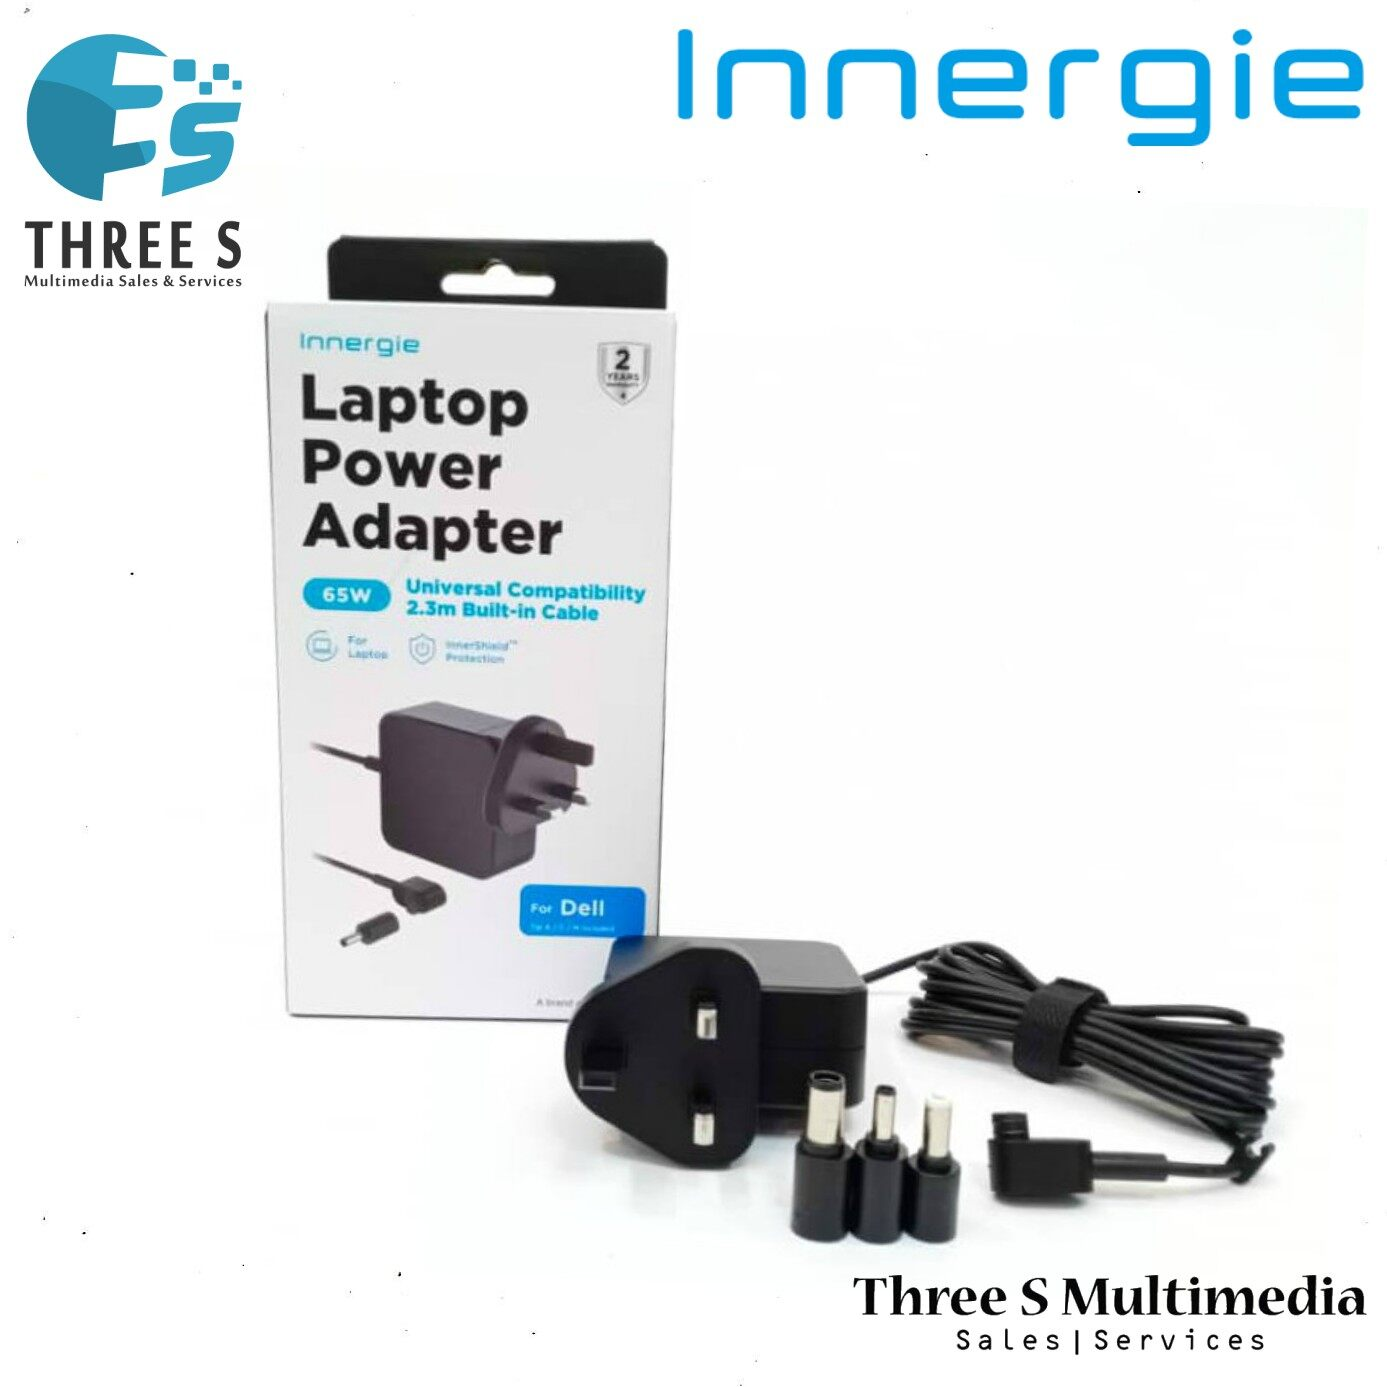 Innergie 65W Laptop Power Adapter Universal Compatibility with Built-in Cable For DELL A Brand Of DELTA